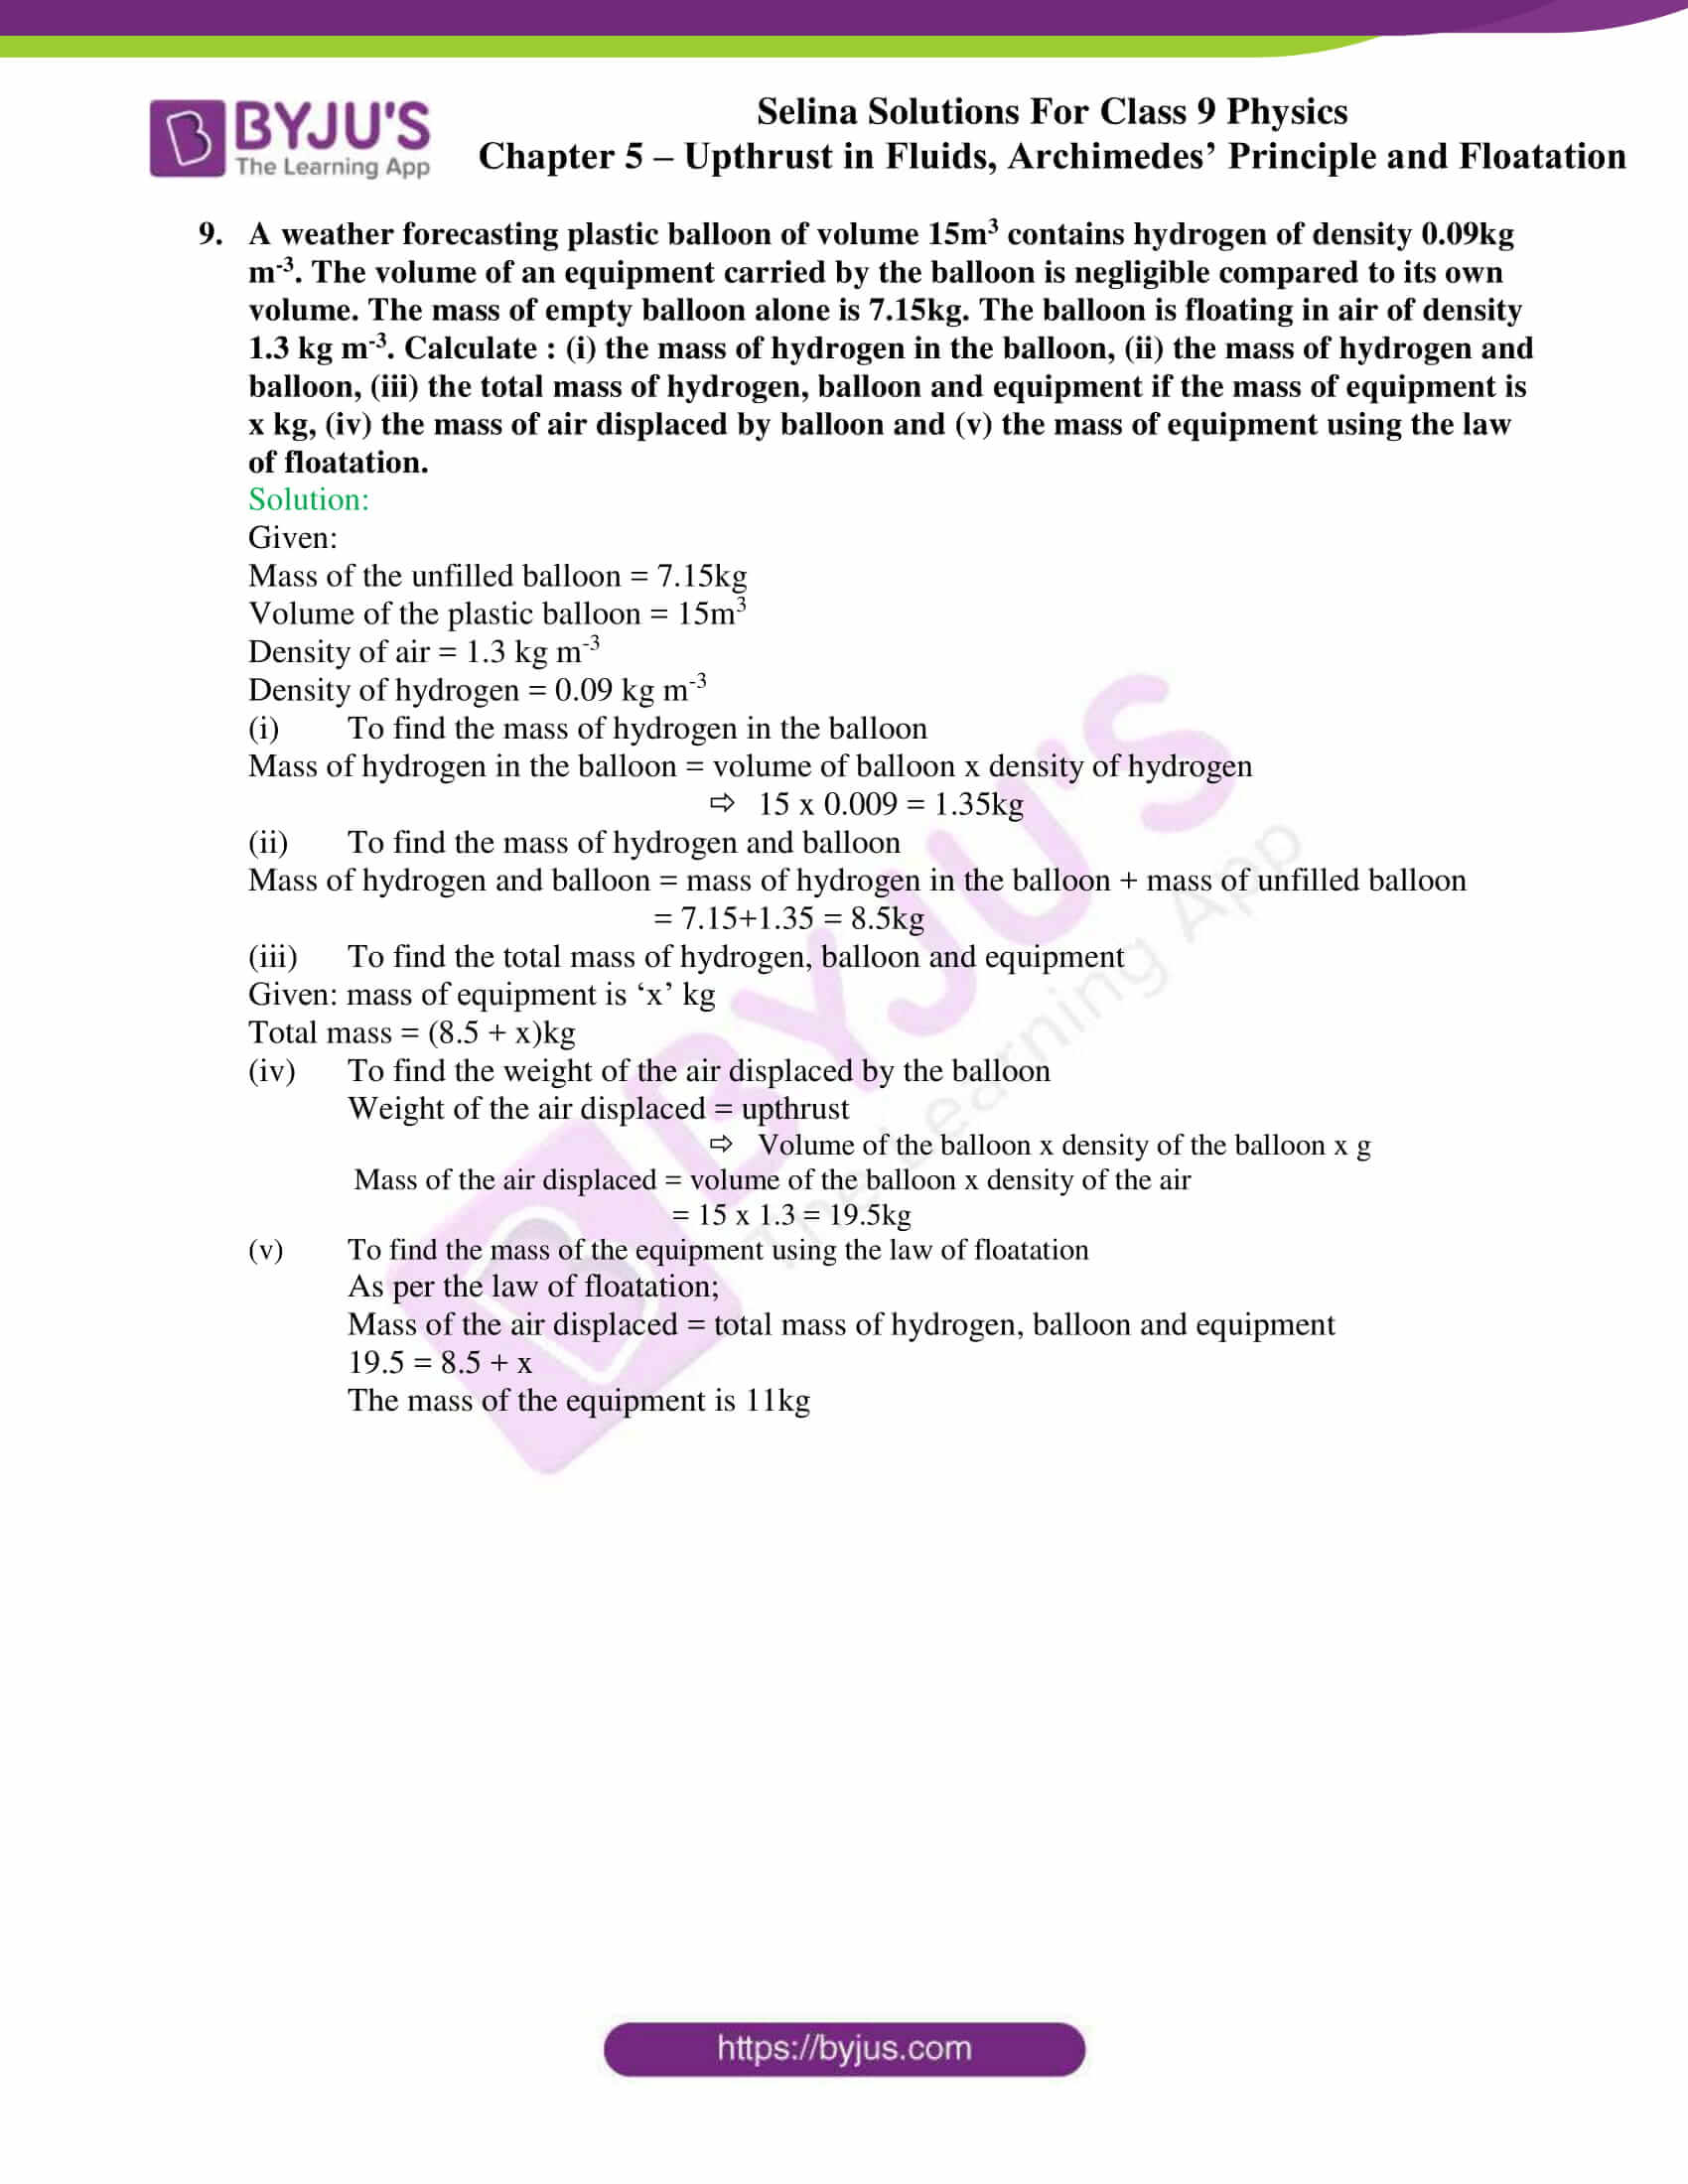 selina solutions class 9 physics chapter 5 part 33